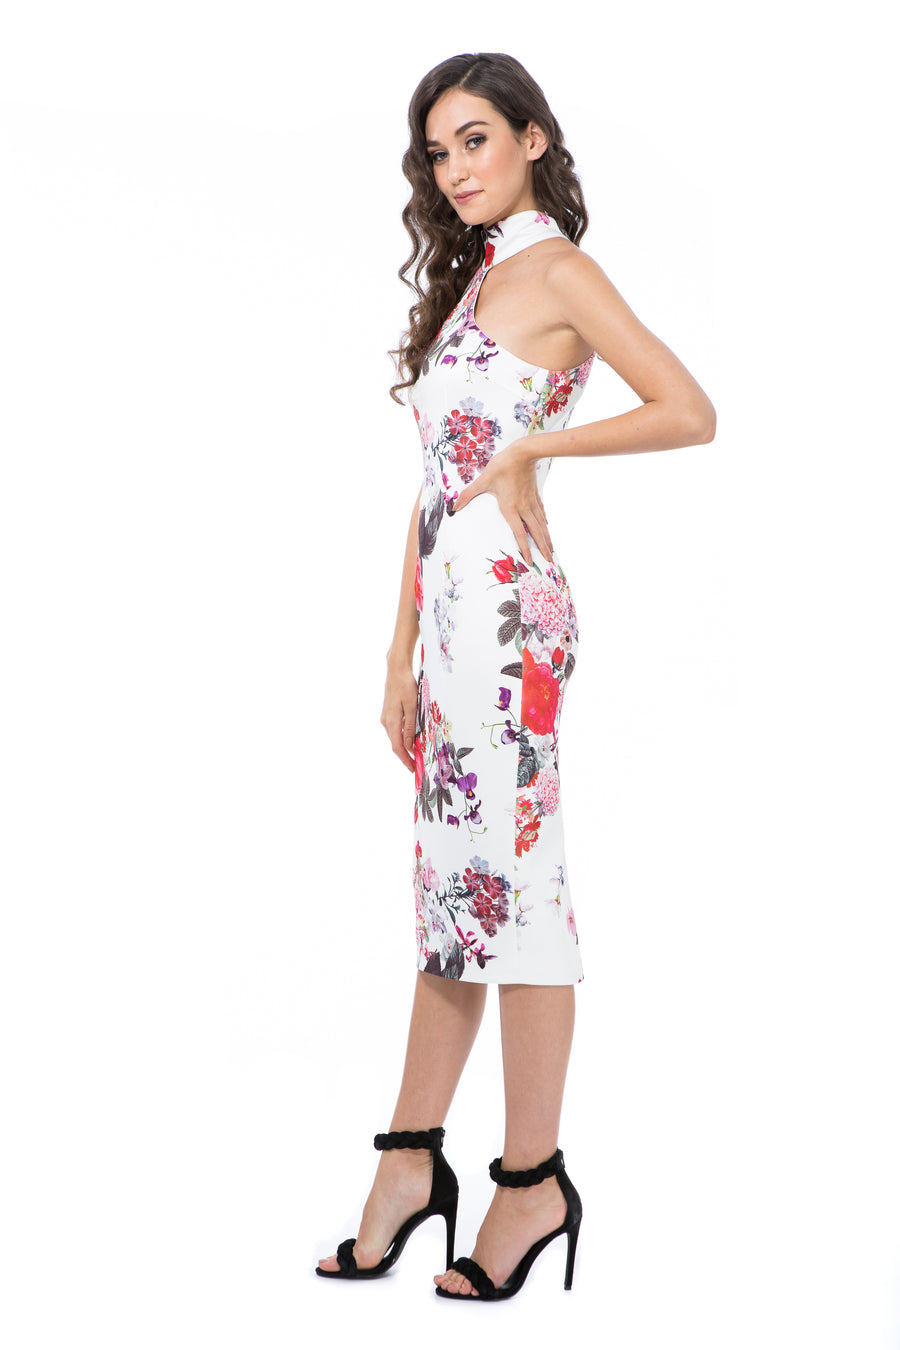 CLAUDIA - WHITE FLORAL - GEORGY COLLECTION